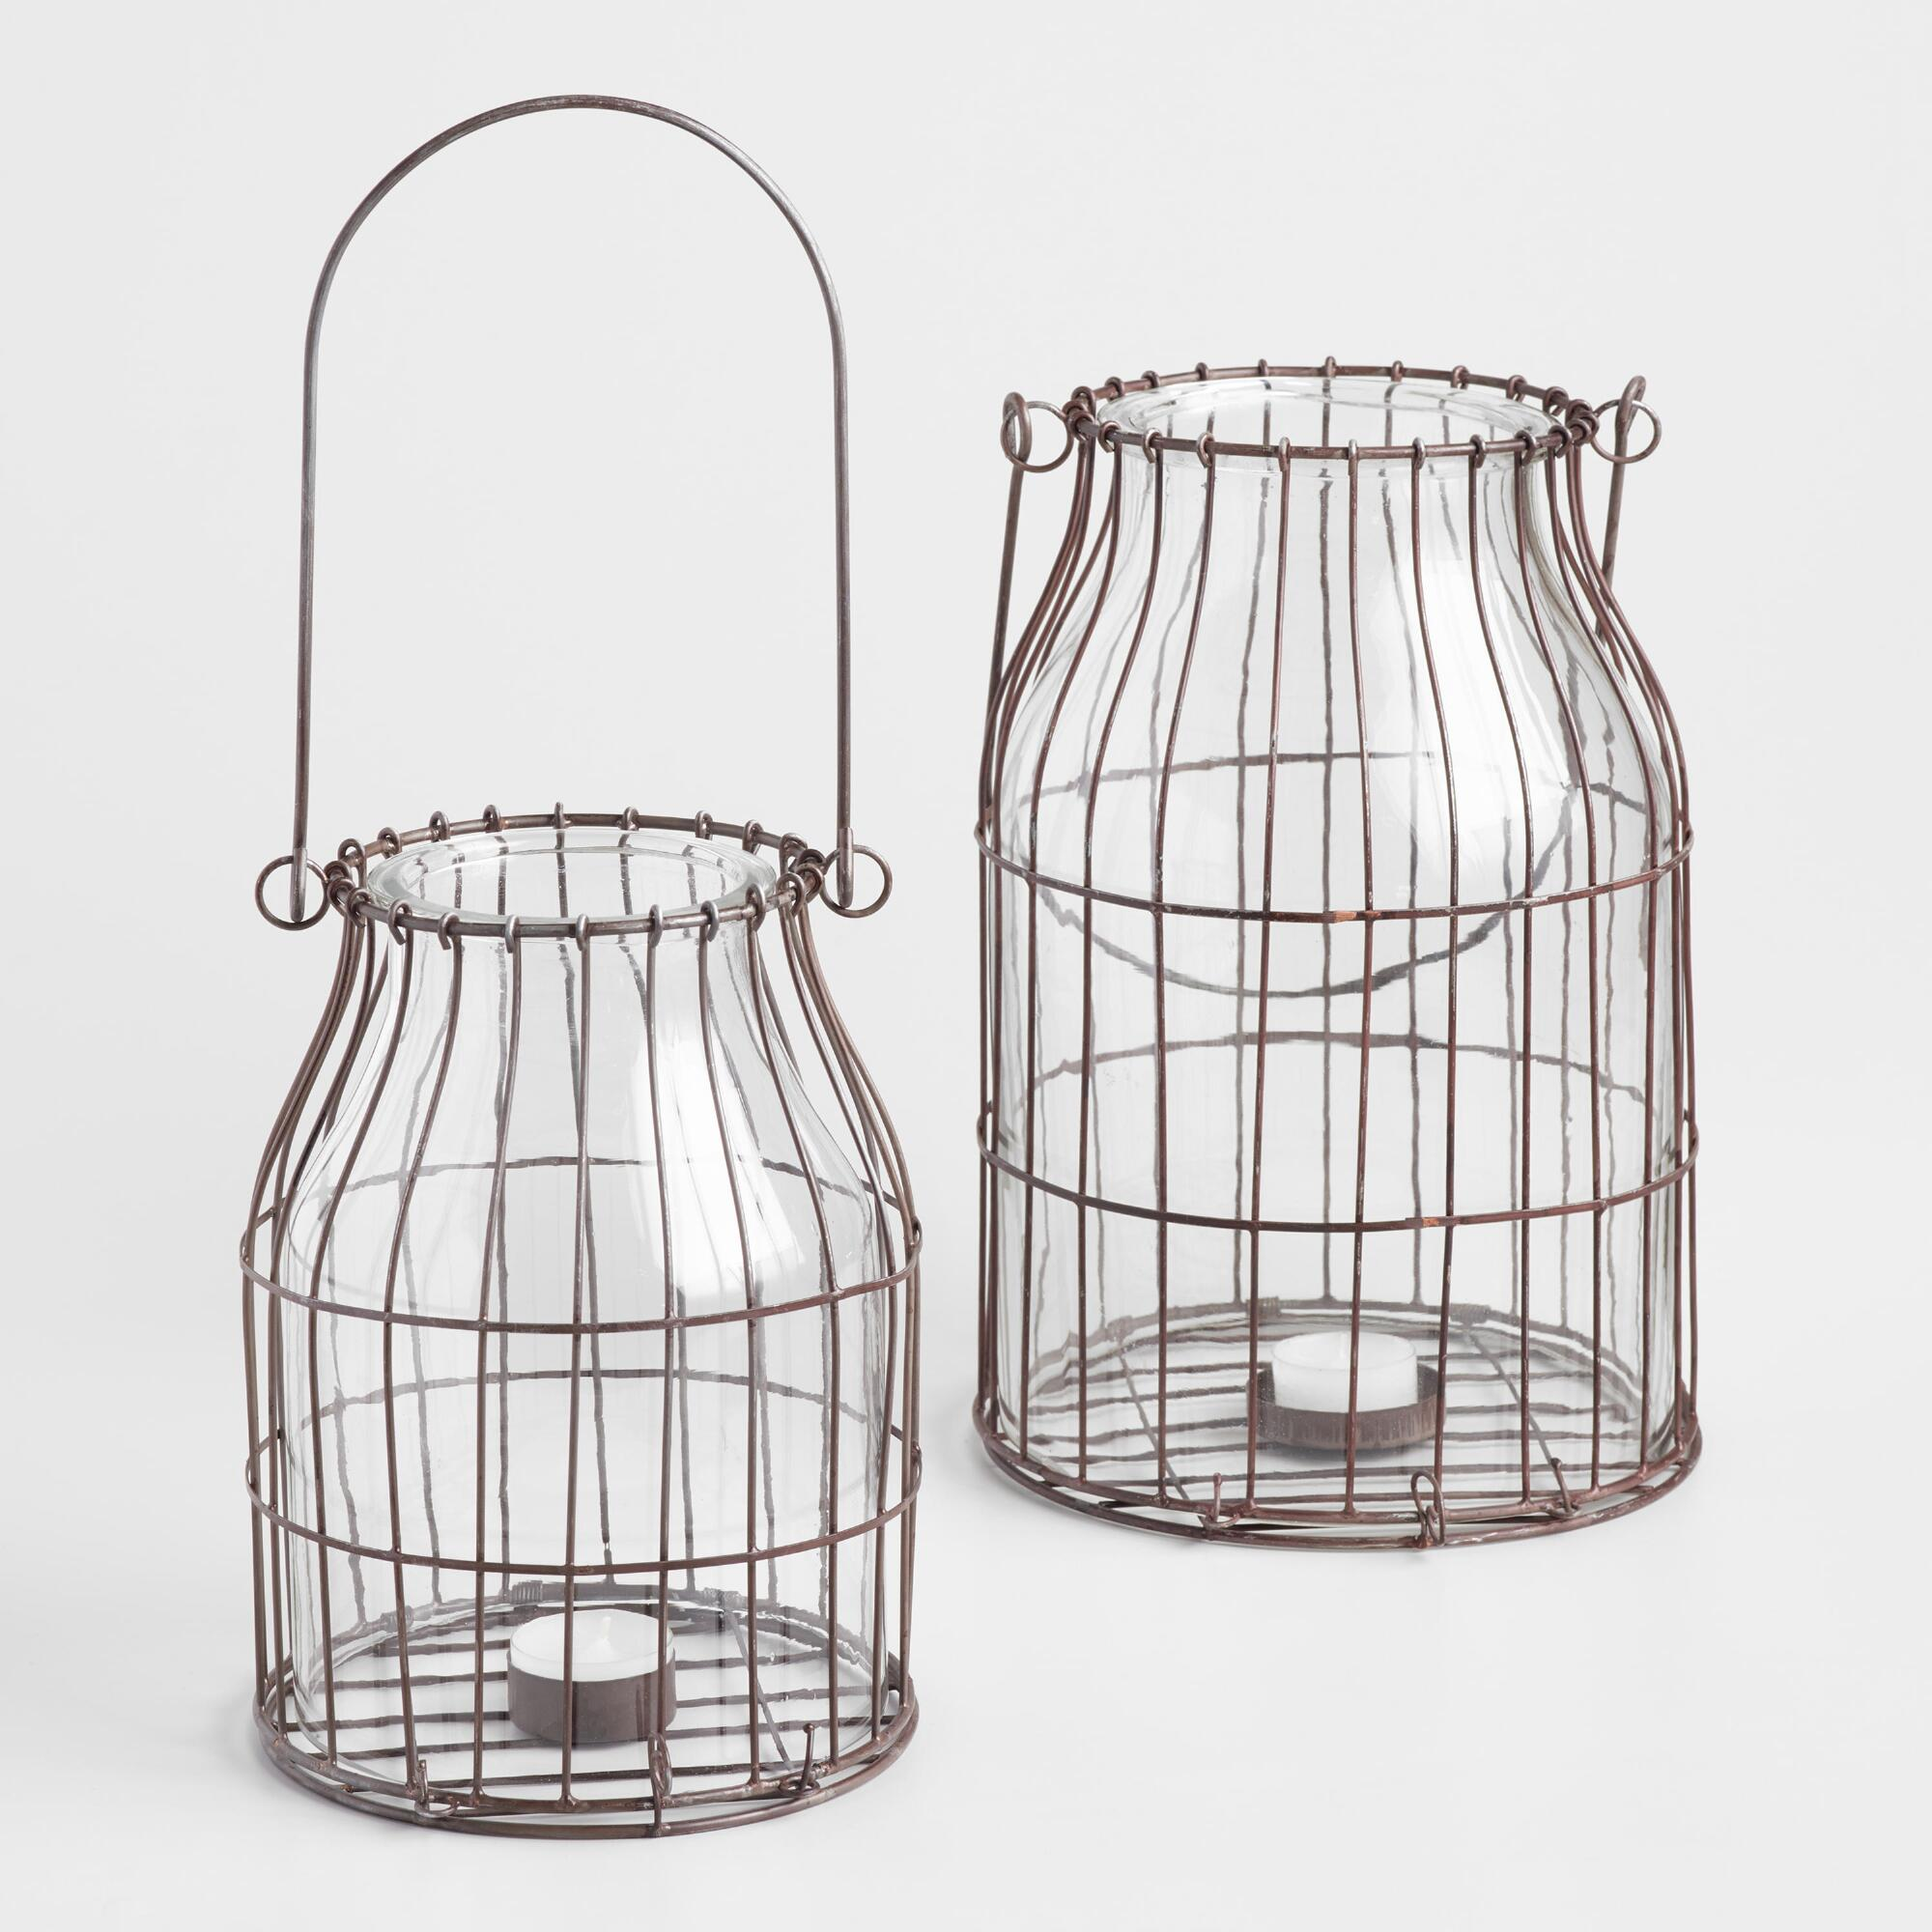 Rustic Caged Wire and Glass Lantern - Small by World Market Small